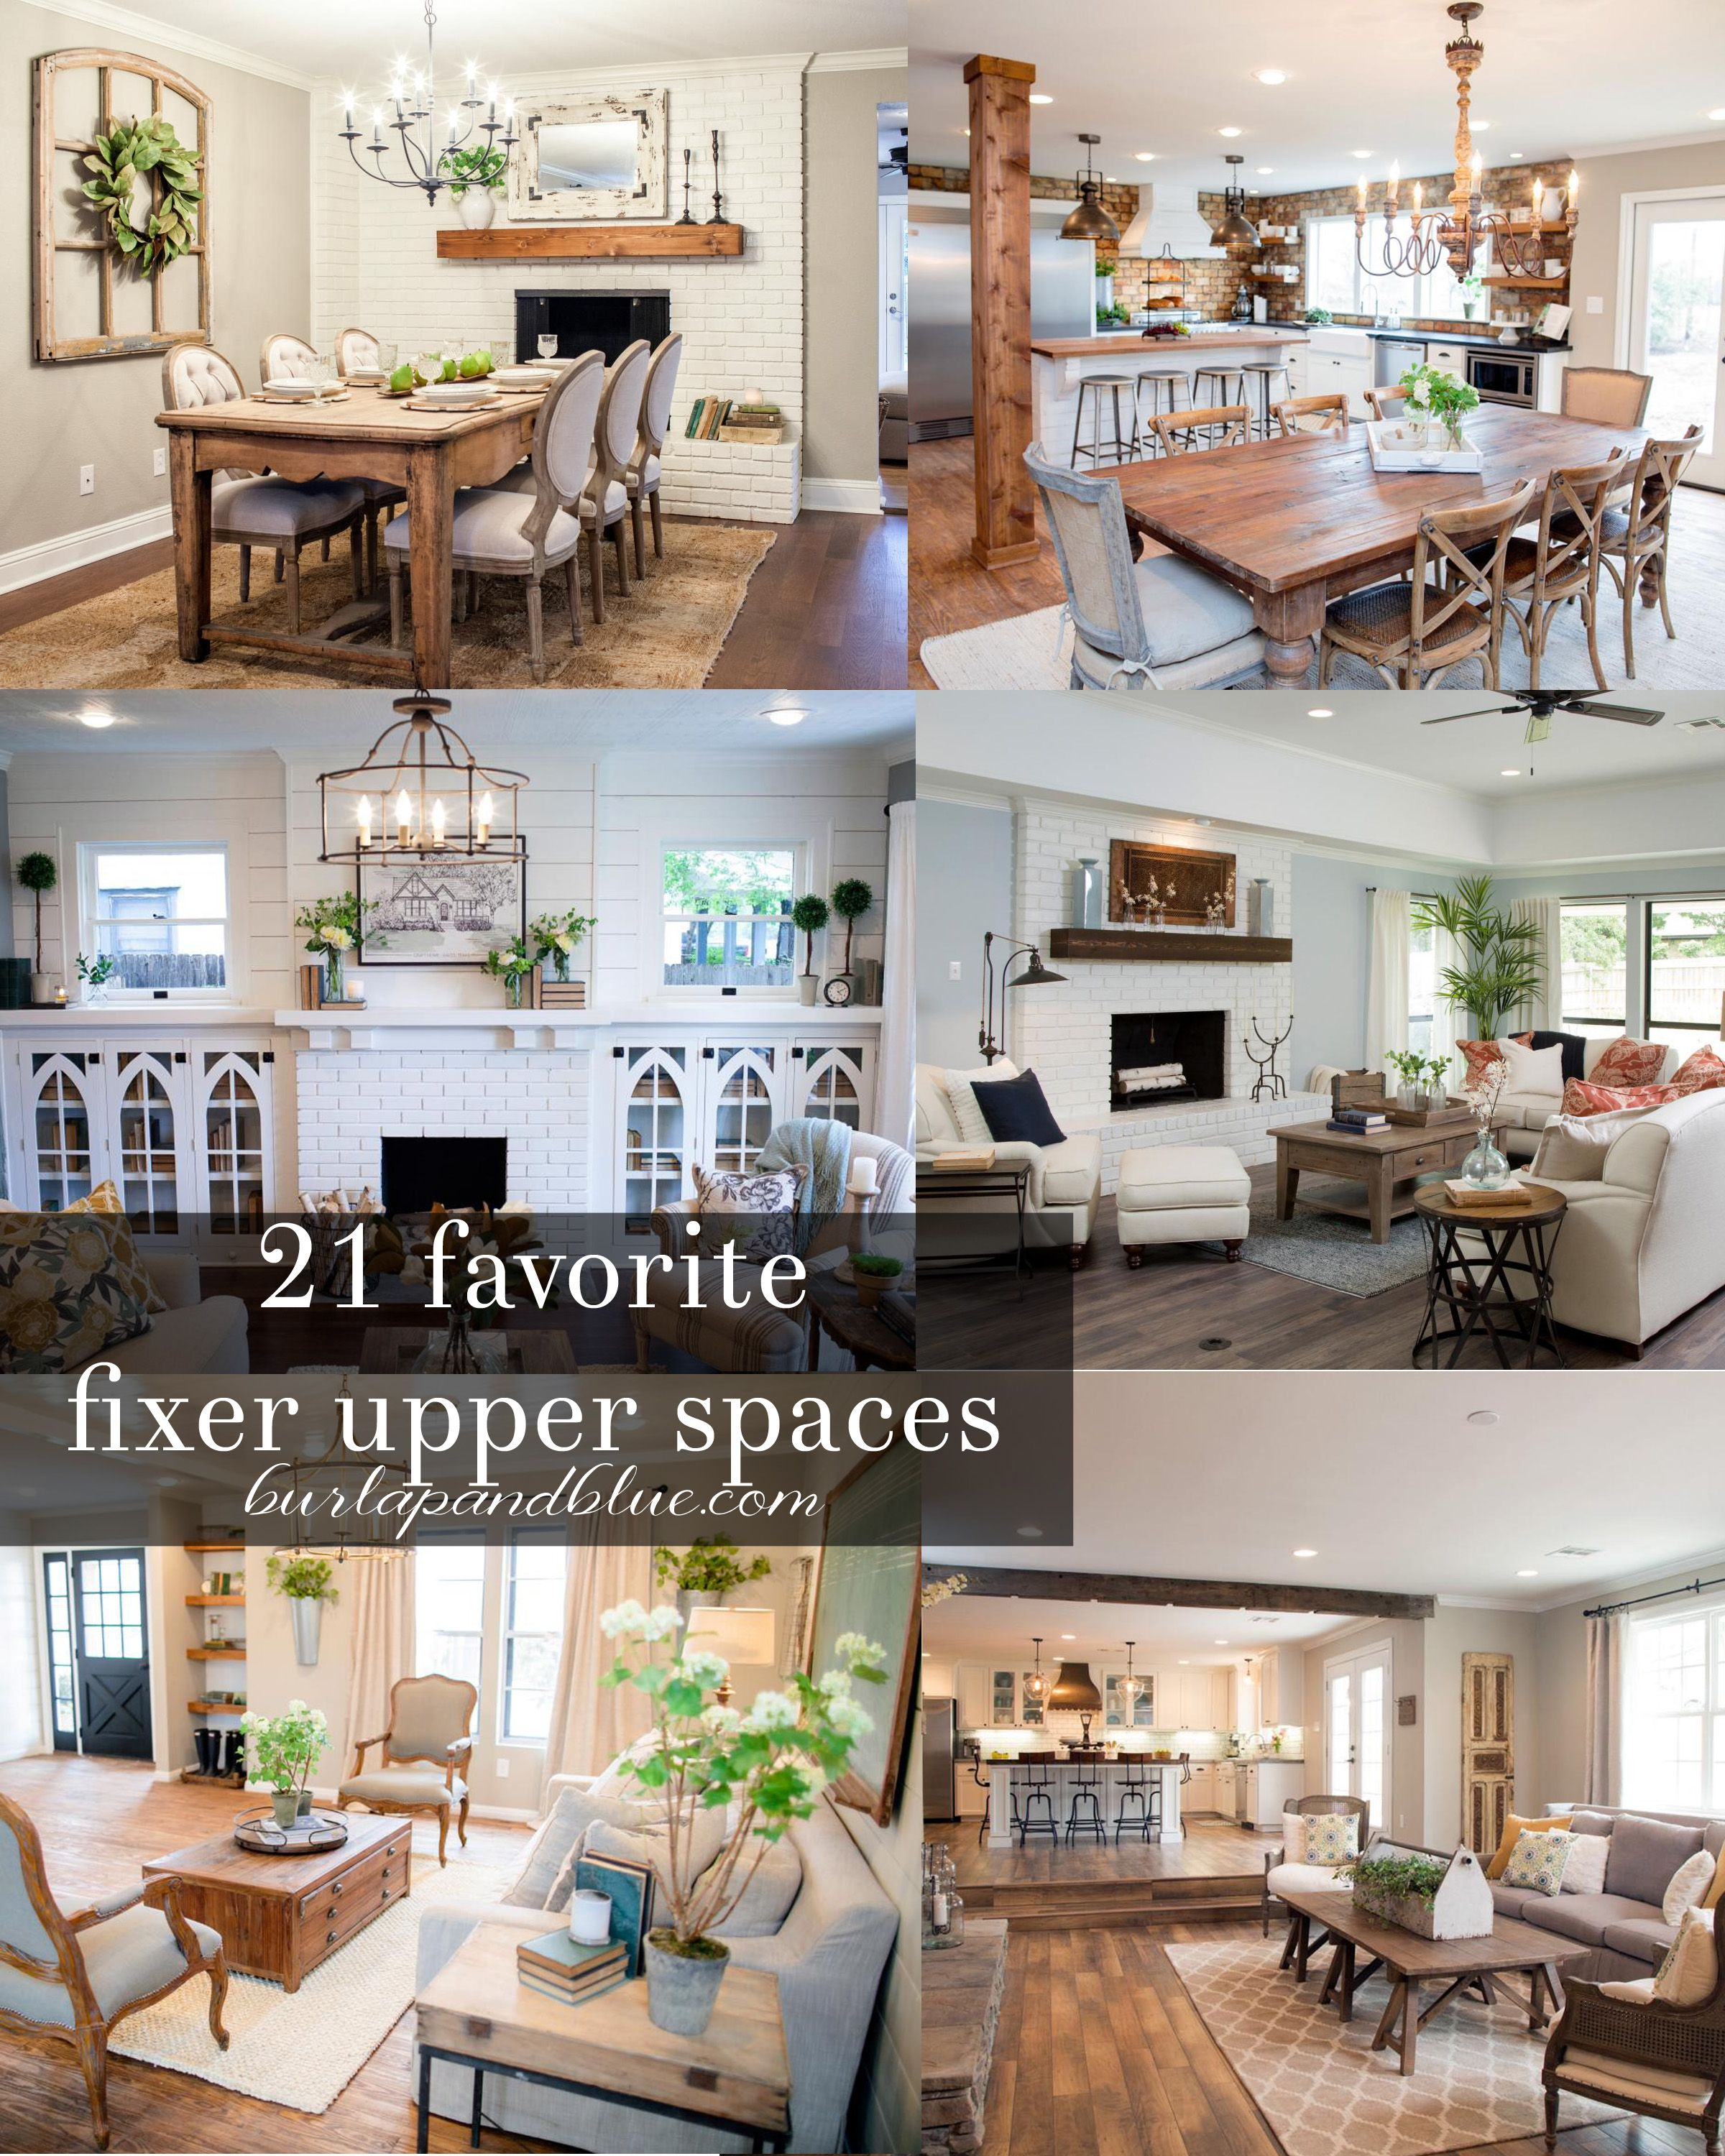 Joanna Gaines Kitchen Decor: Fixer Upper Kitchens, Living And Dining Rooms {21